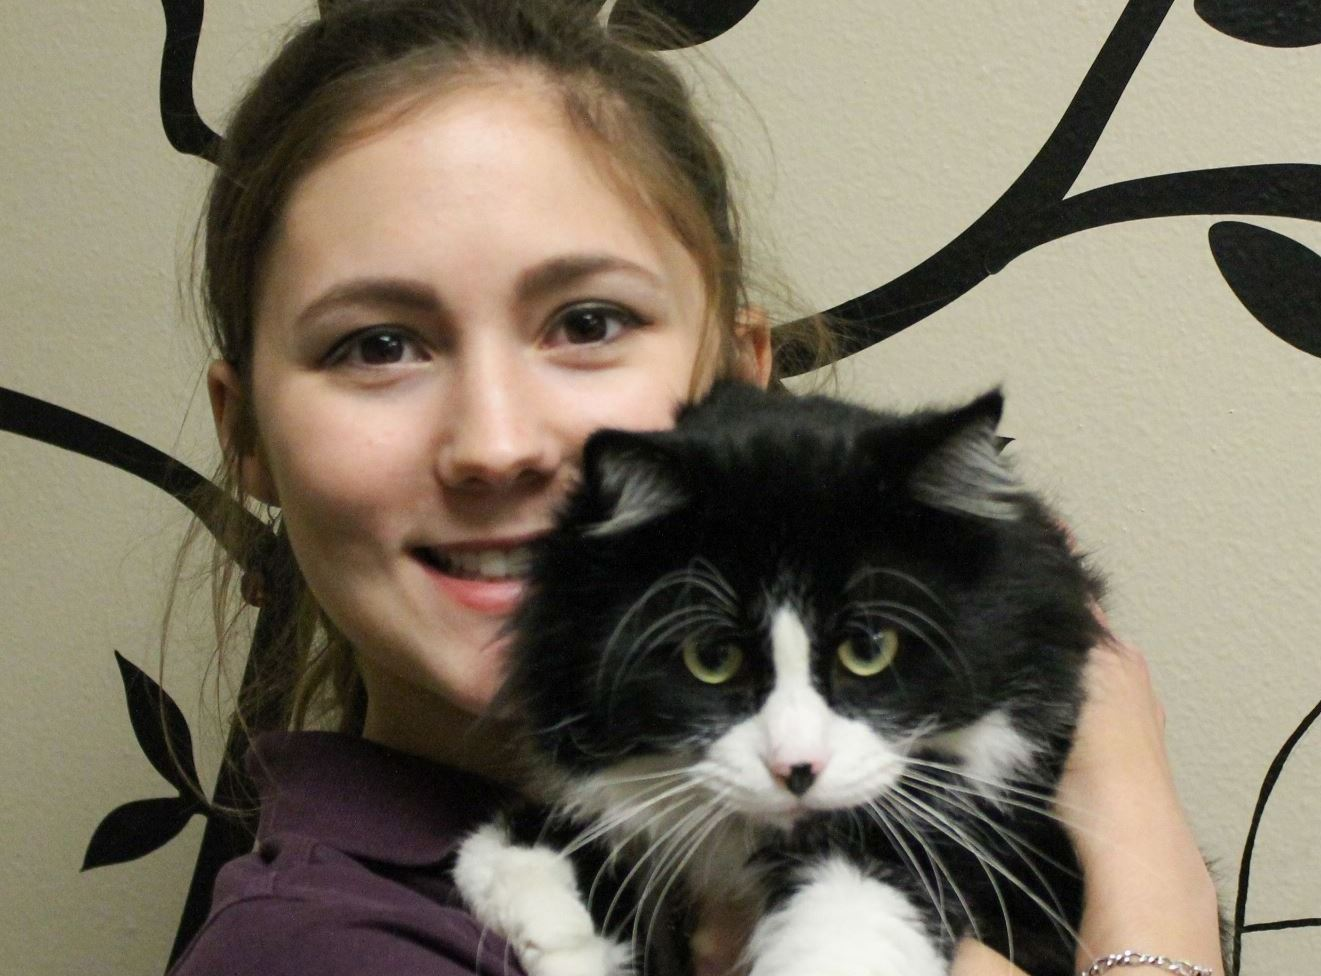 Nichole Nocki holding a long haired black and white cat